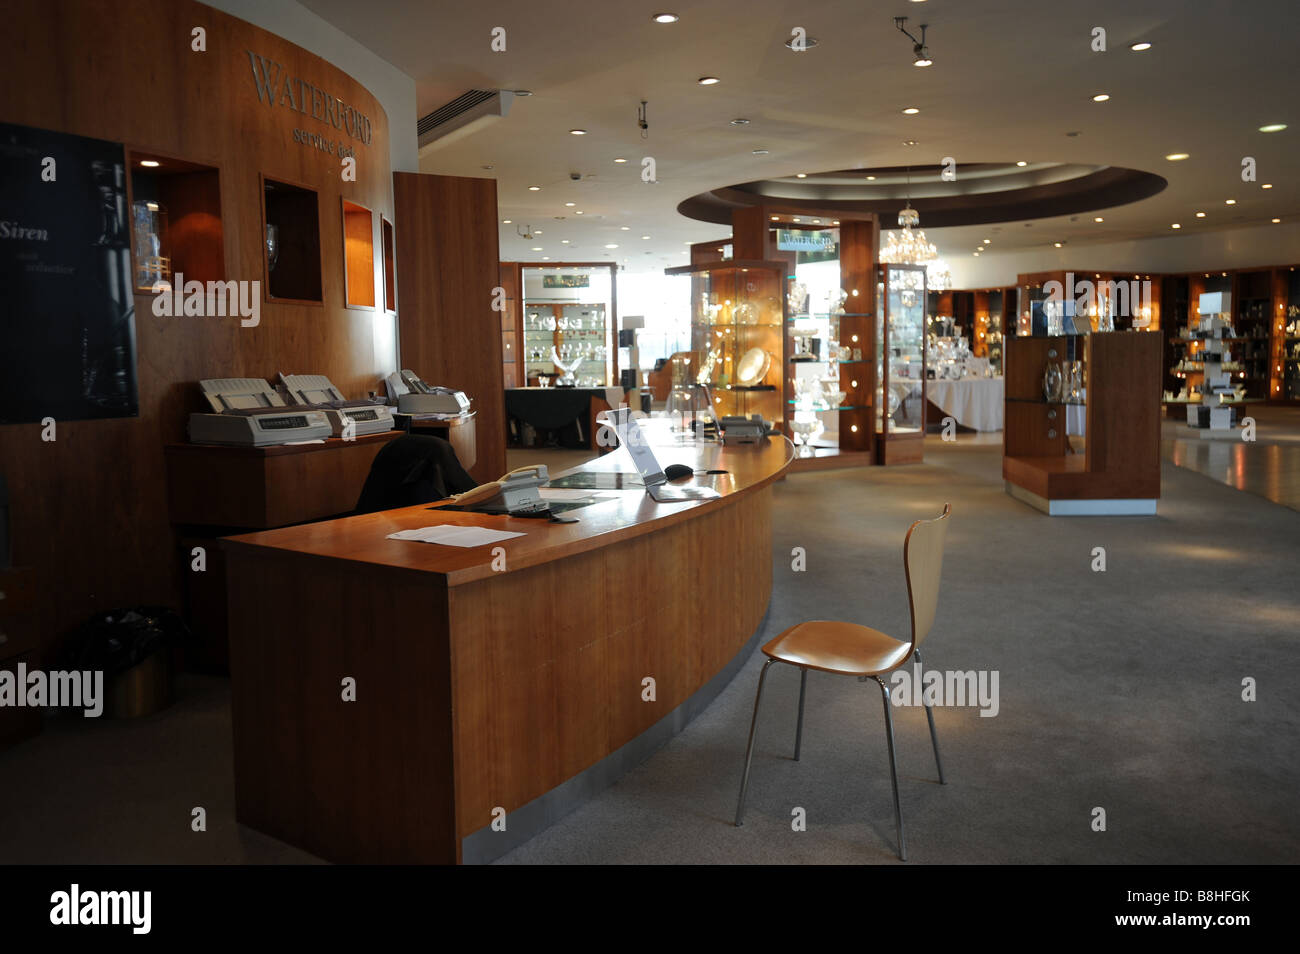 The empty Waterford crystal visitors centre in Waterford Ireland - Stock Image